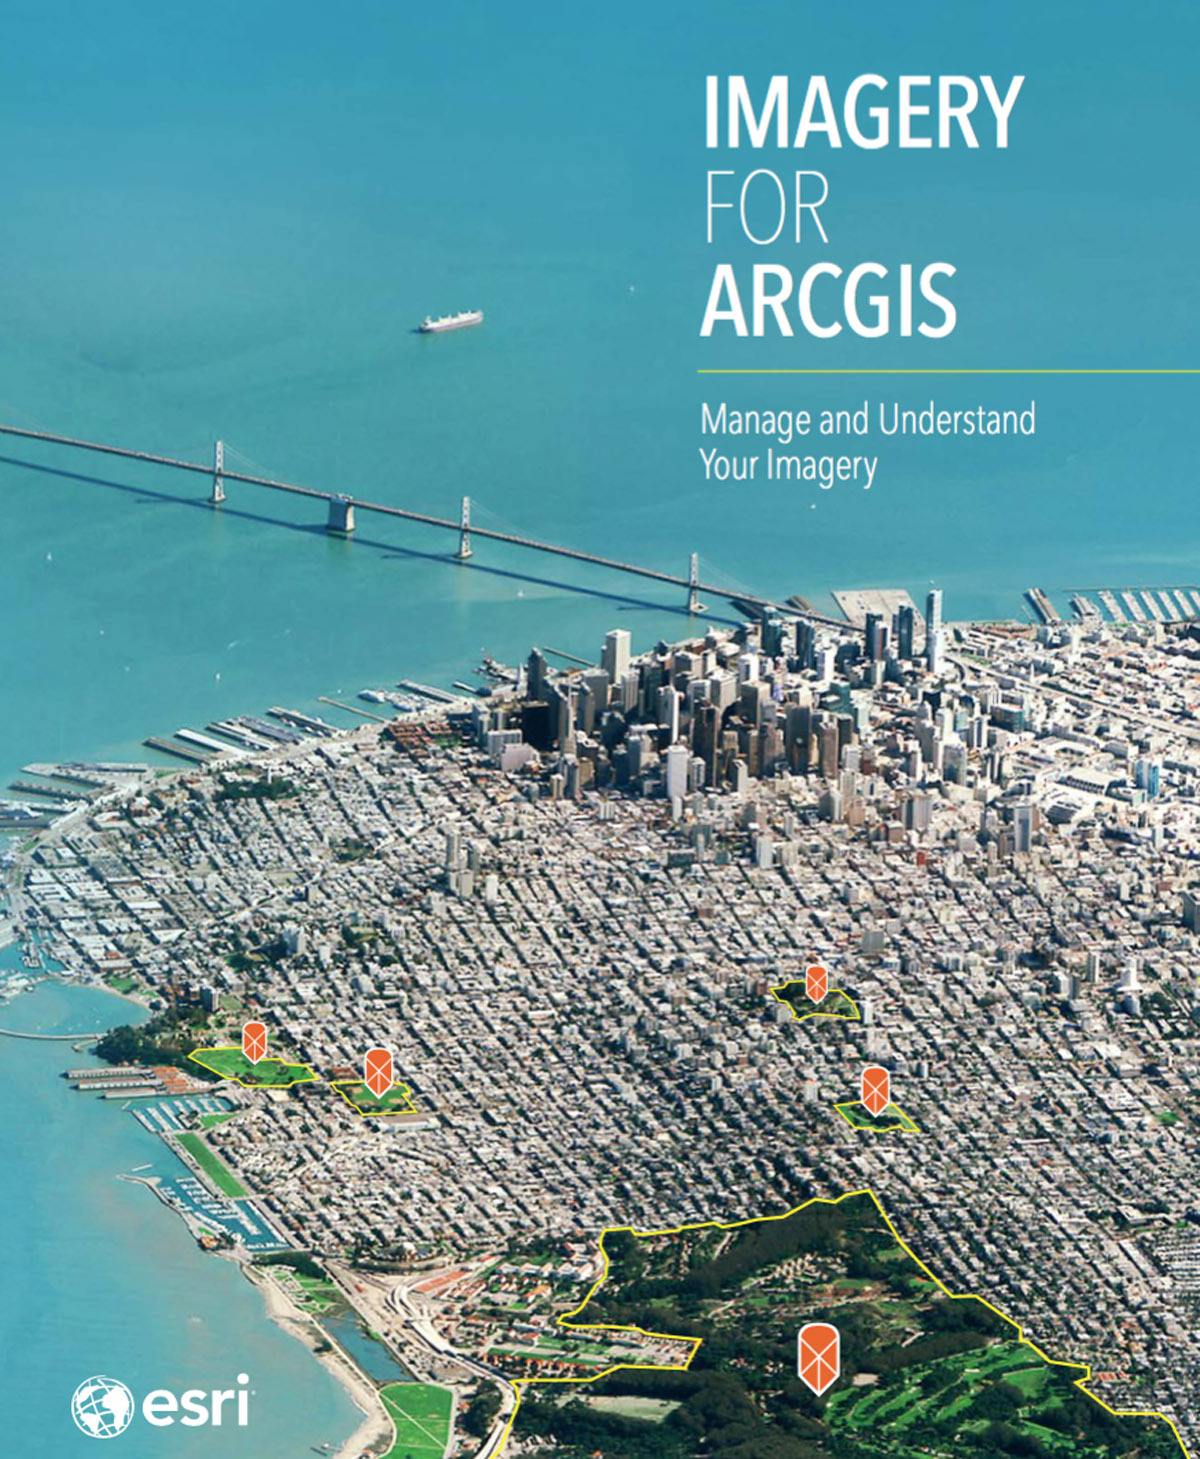 "<em>Imagery for ArcGIS</em>"" title=""<em>Imagery for ArcGIS</em>""><img src="